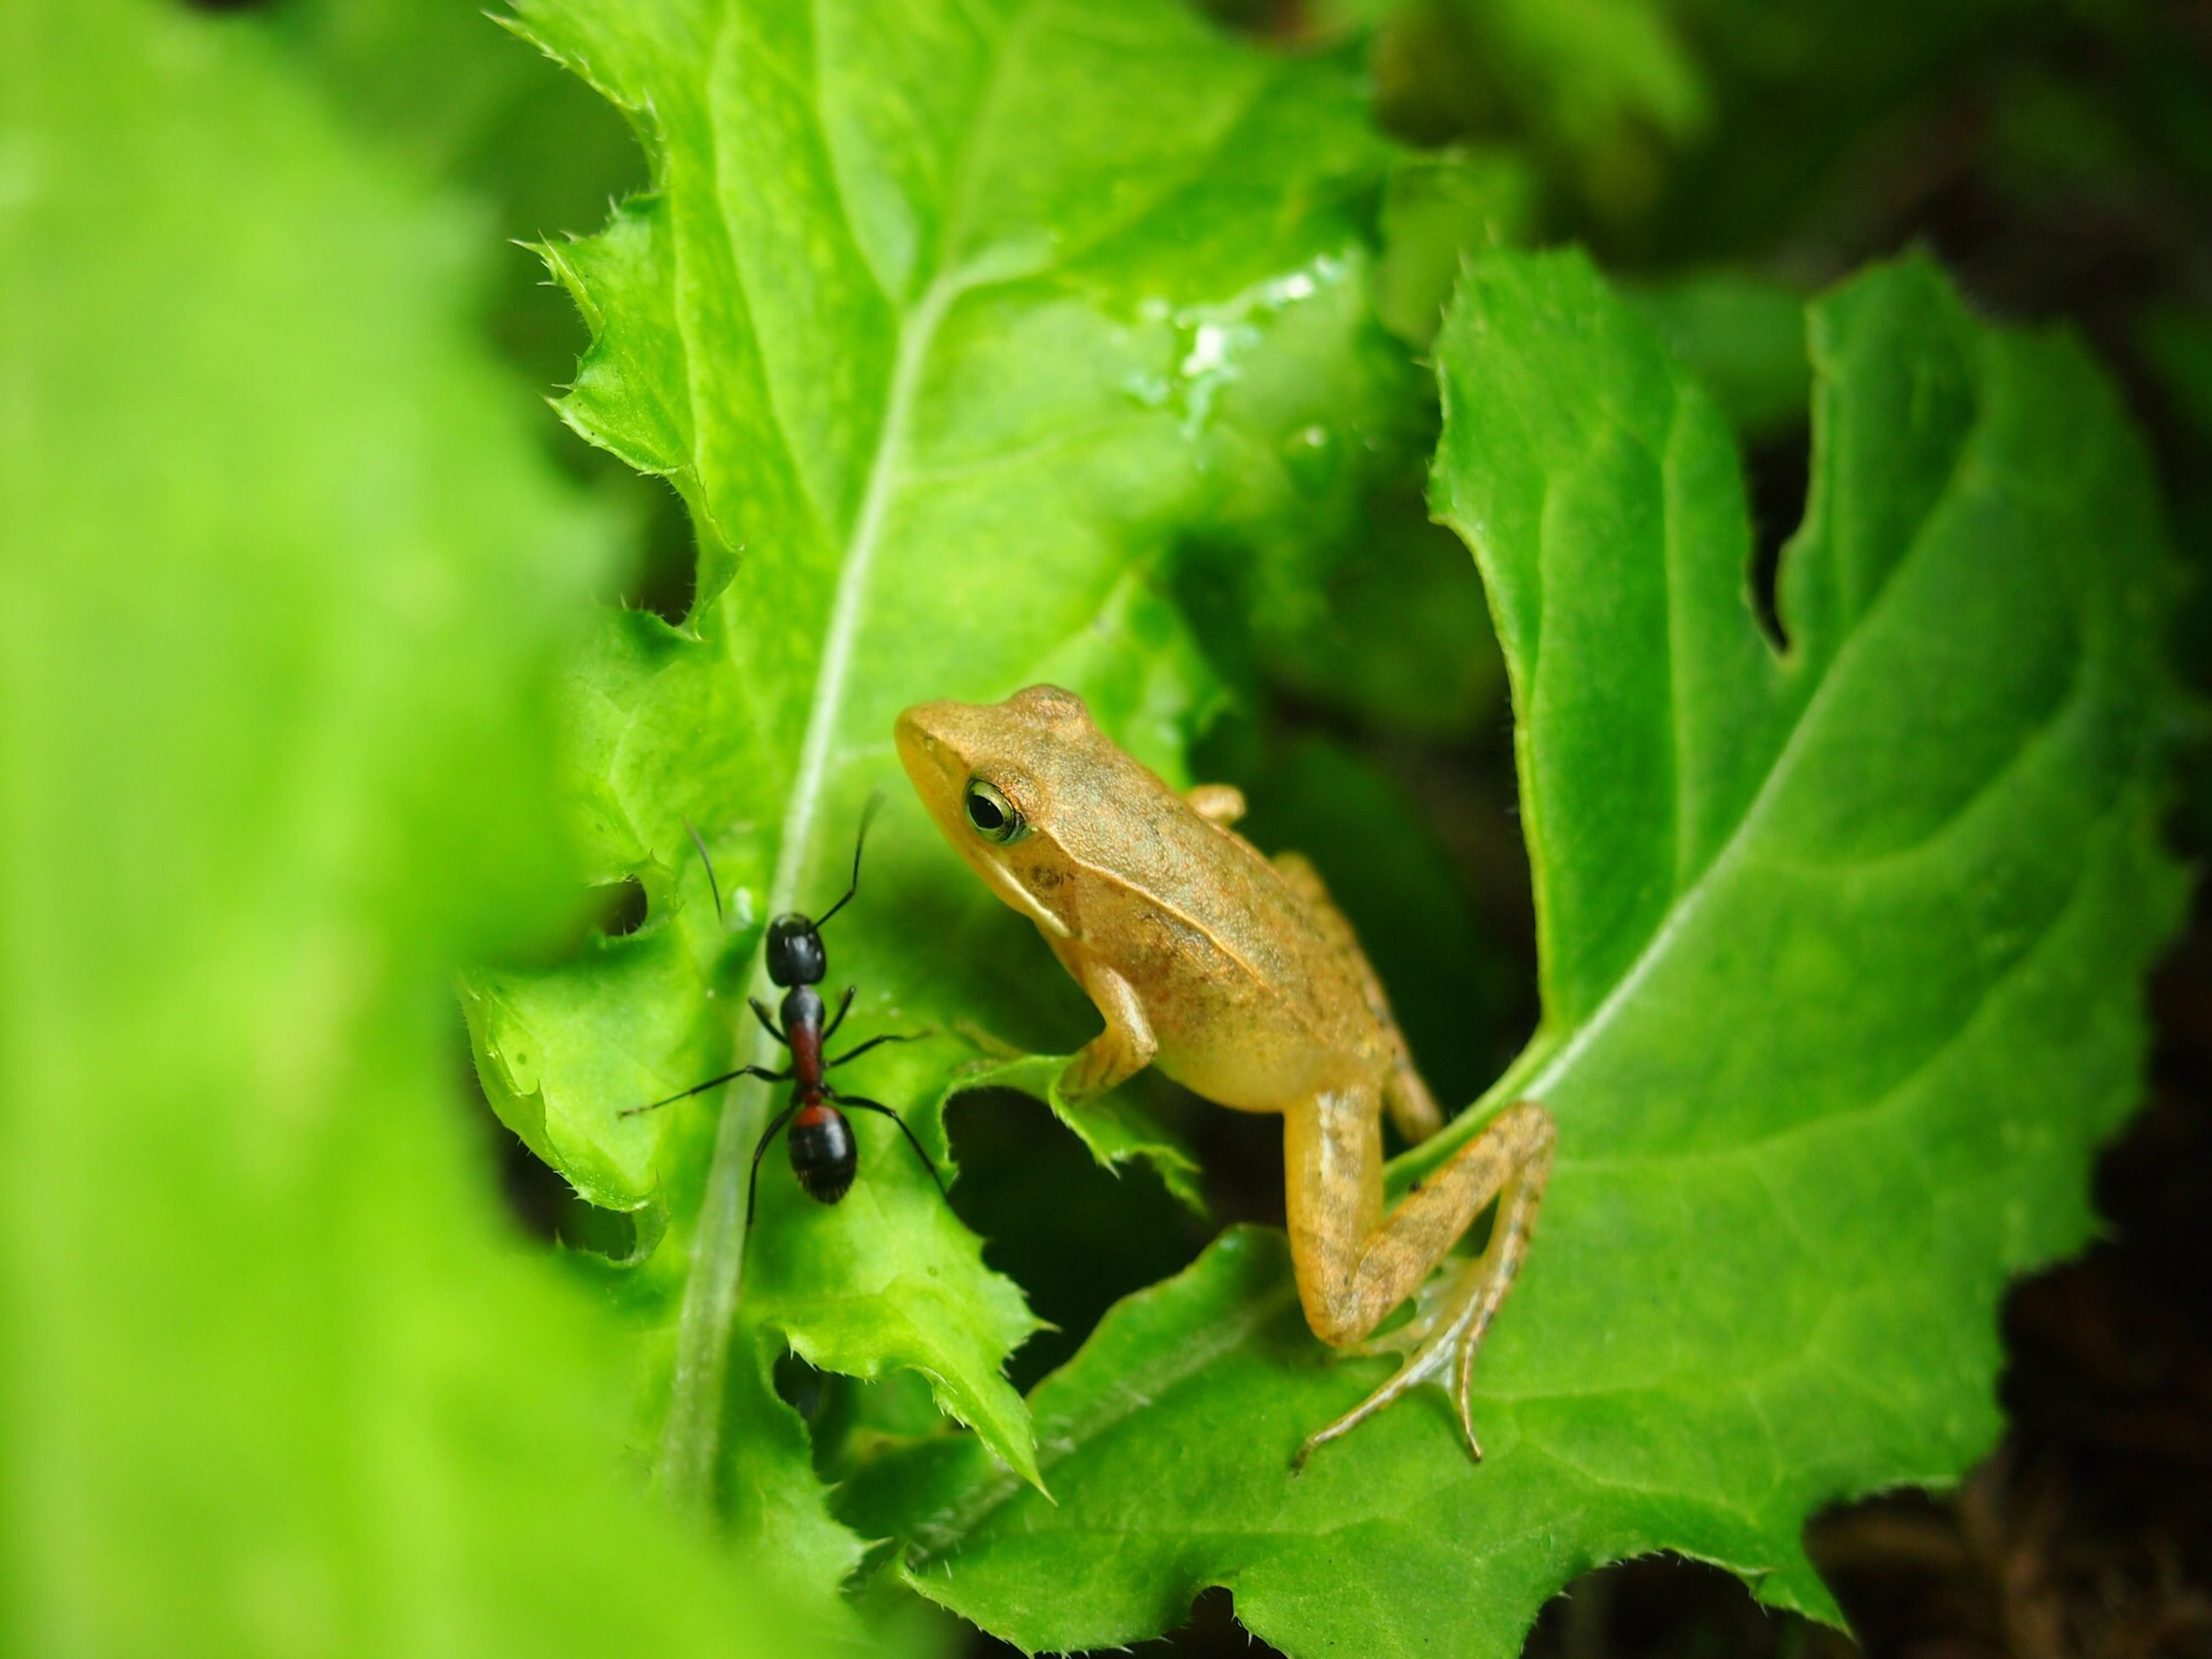 animals in the wild, animal themes, wildlife, insect, one animal, leaf, green color, close-up, plant, nature, focus on foreground, growth, selective focus, beauty in nature, outdoors, day, high angle view, no people, green, zoology